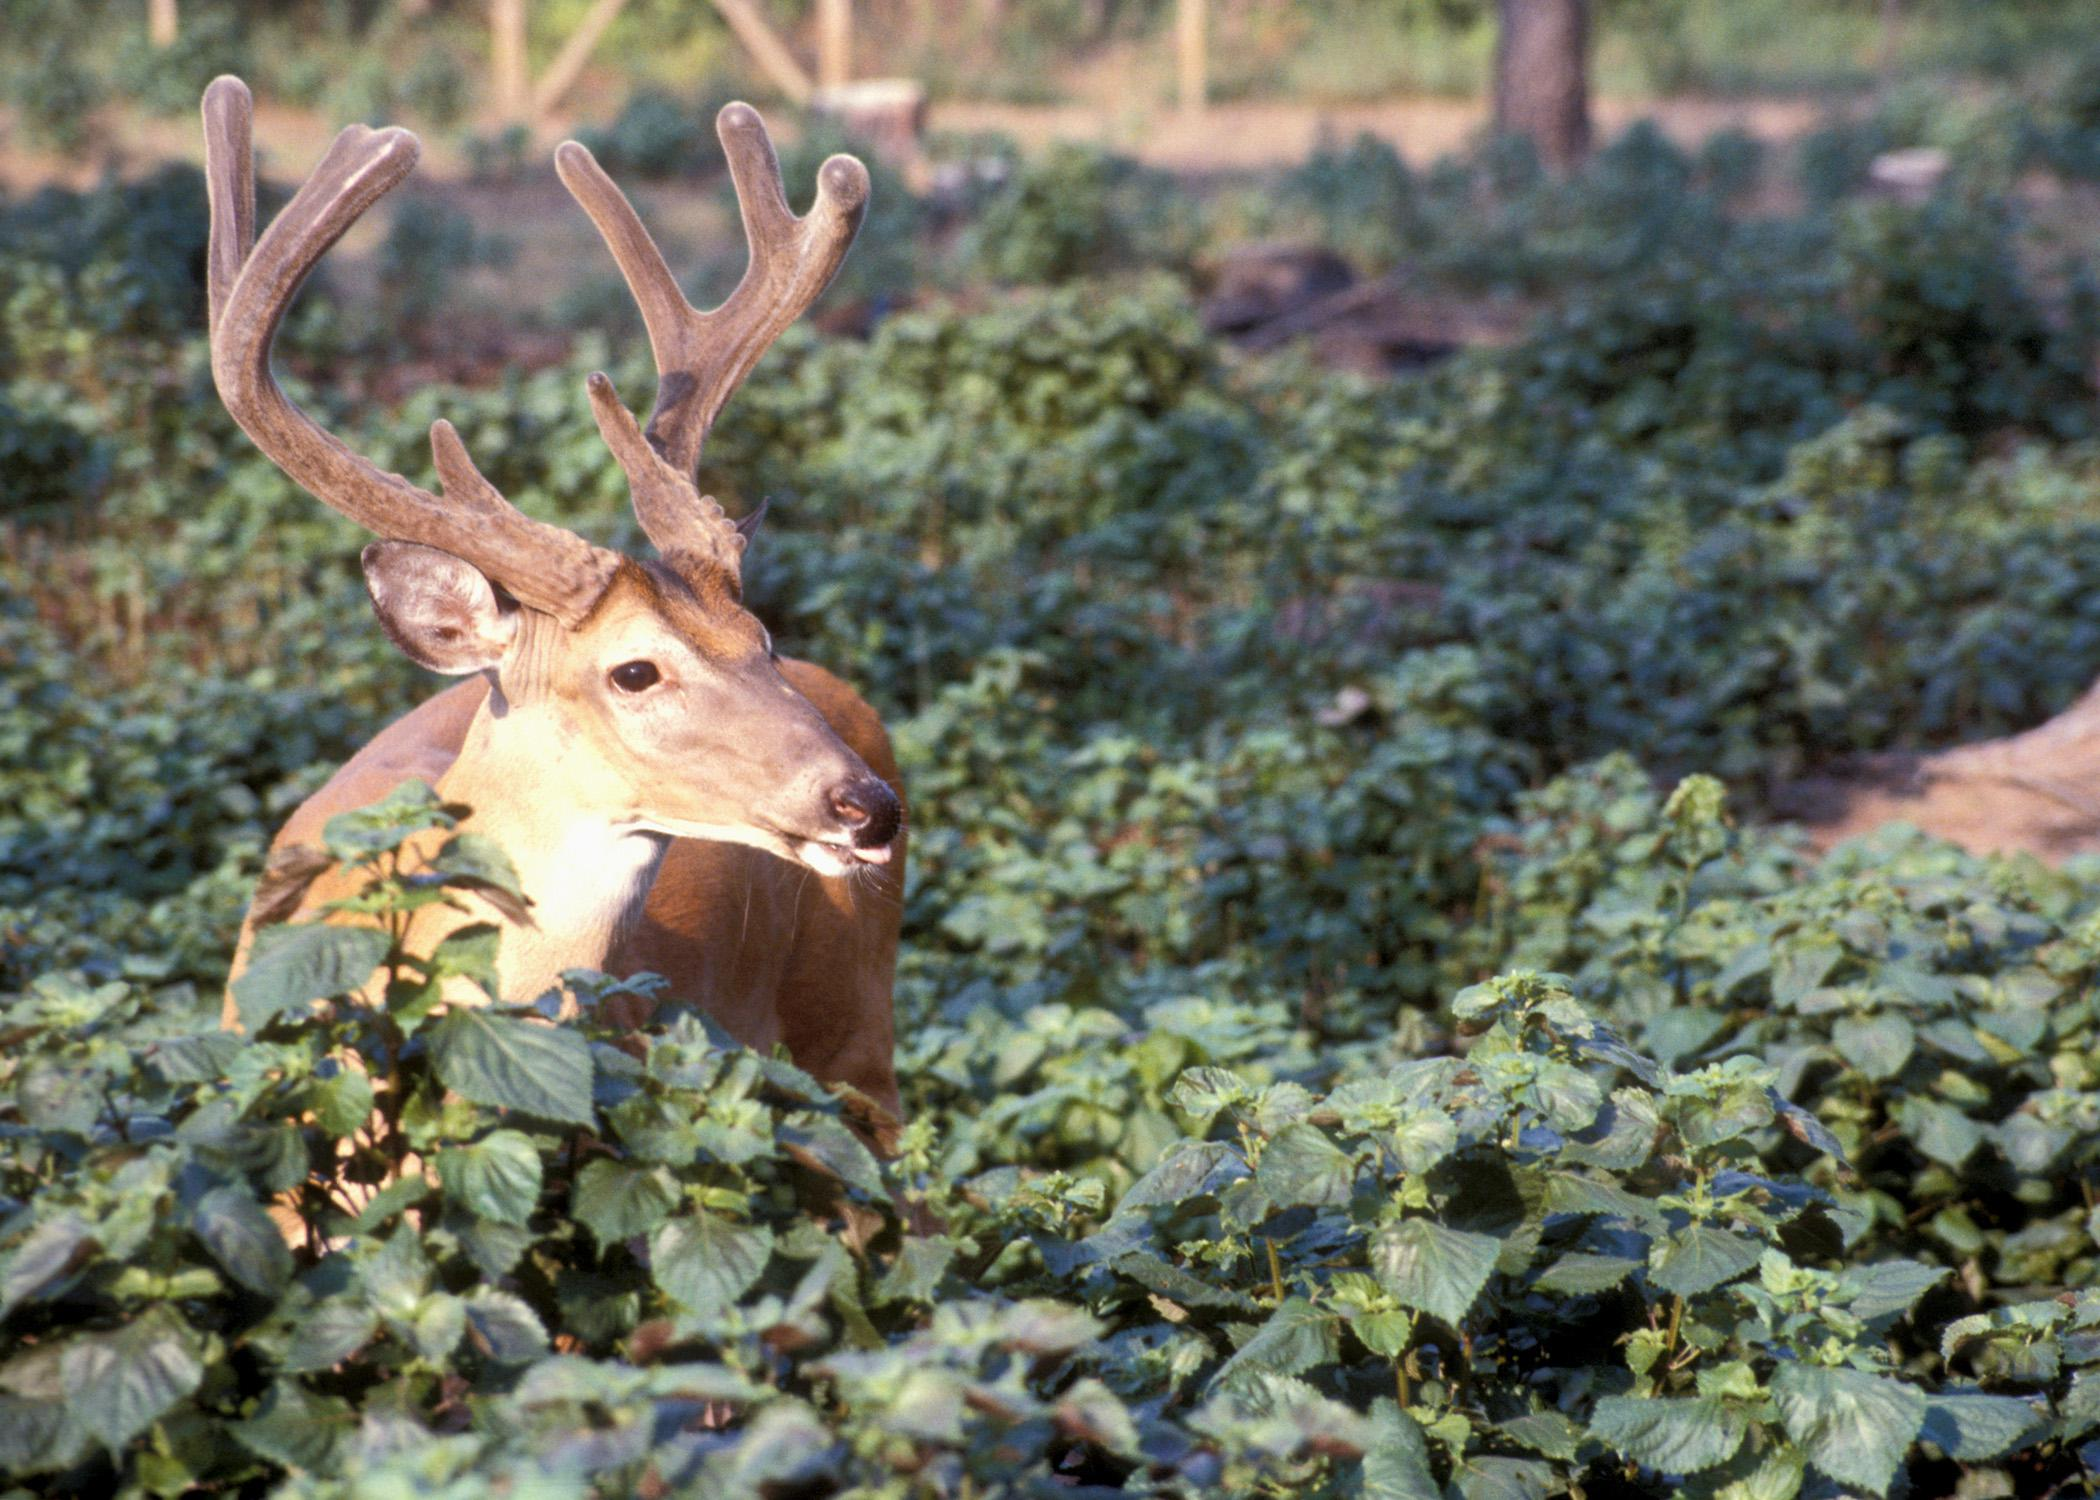 Mississippi forestland can produce trophy bucks when land managers control deer density, create a good buck age structure, manage deer habitat and then selectively harvests bucks. (File photo by MSU Ag Communications)